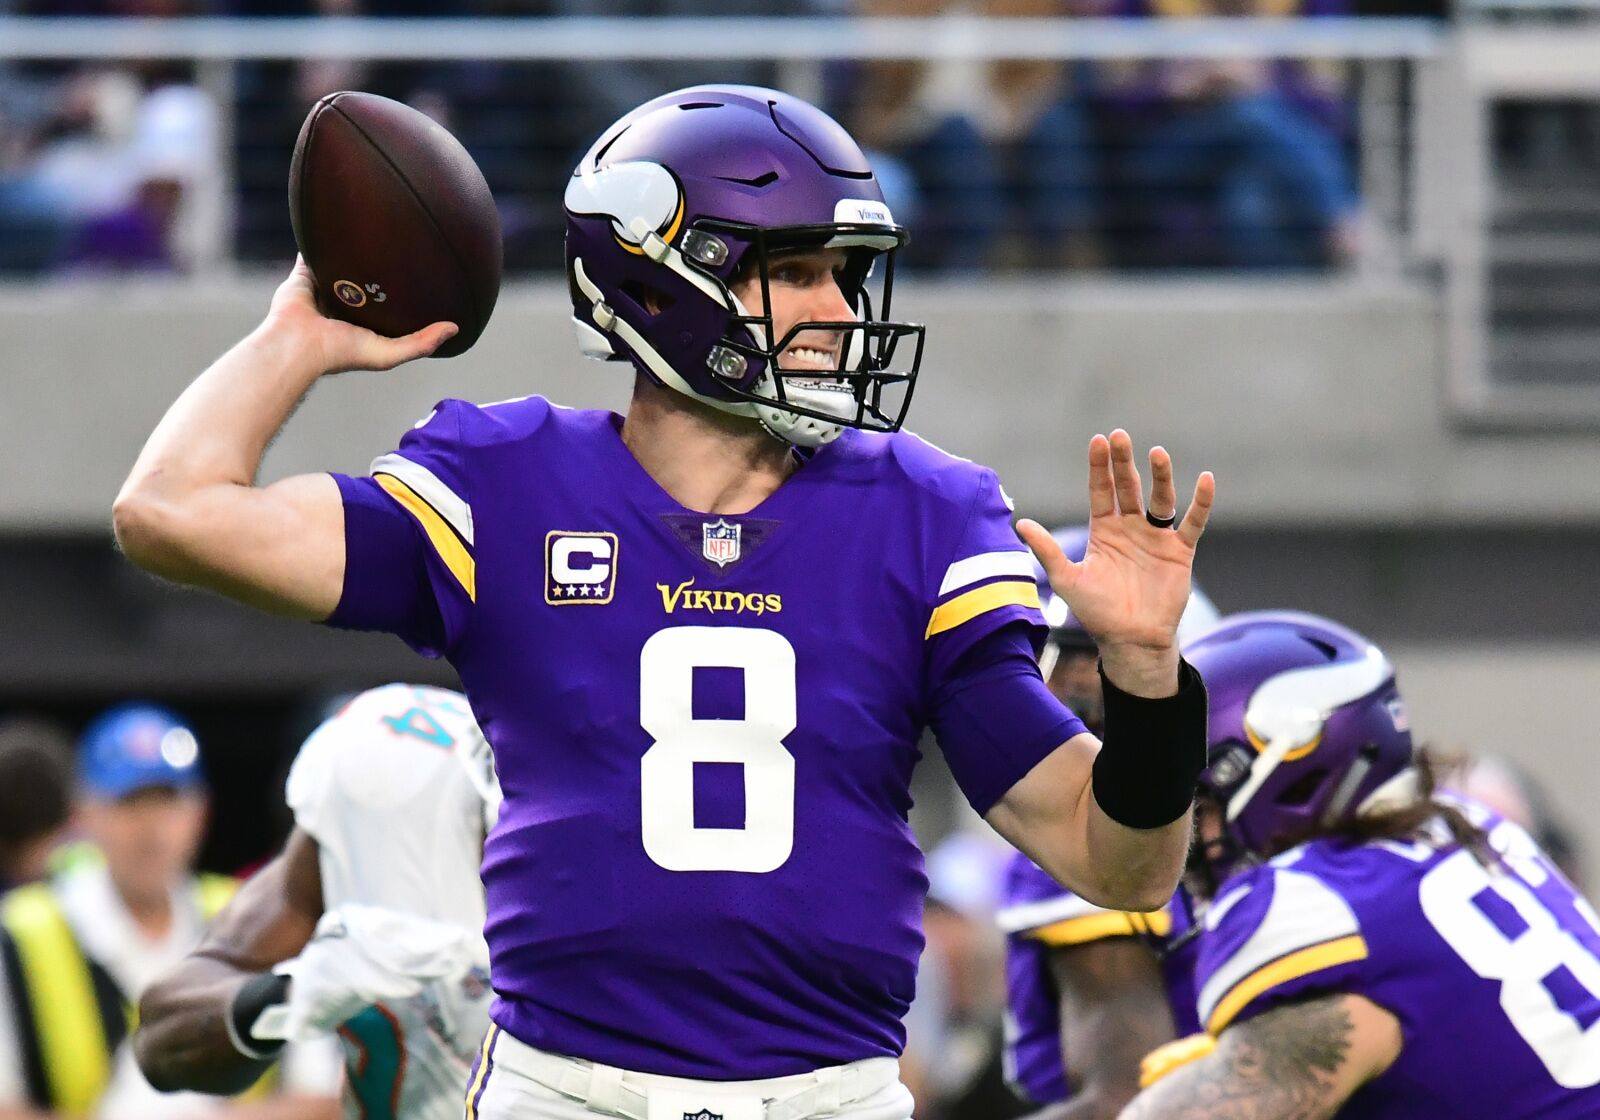 Kirk Cousins predicted to sign an extension with the Vikings